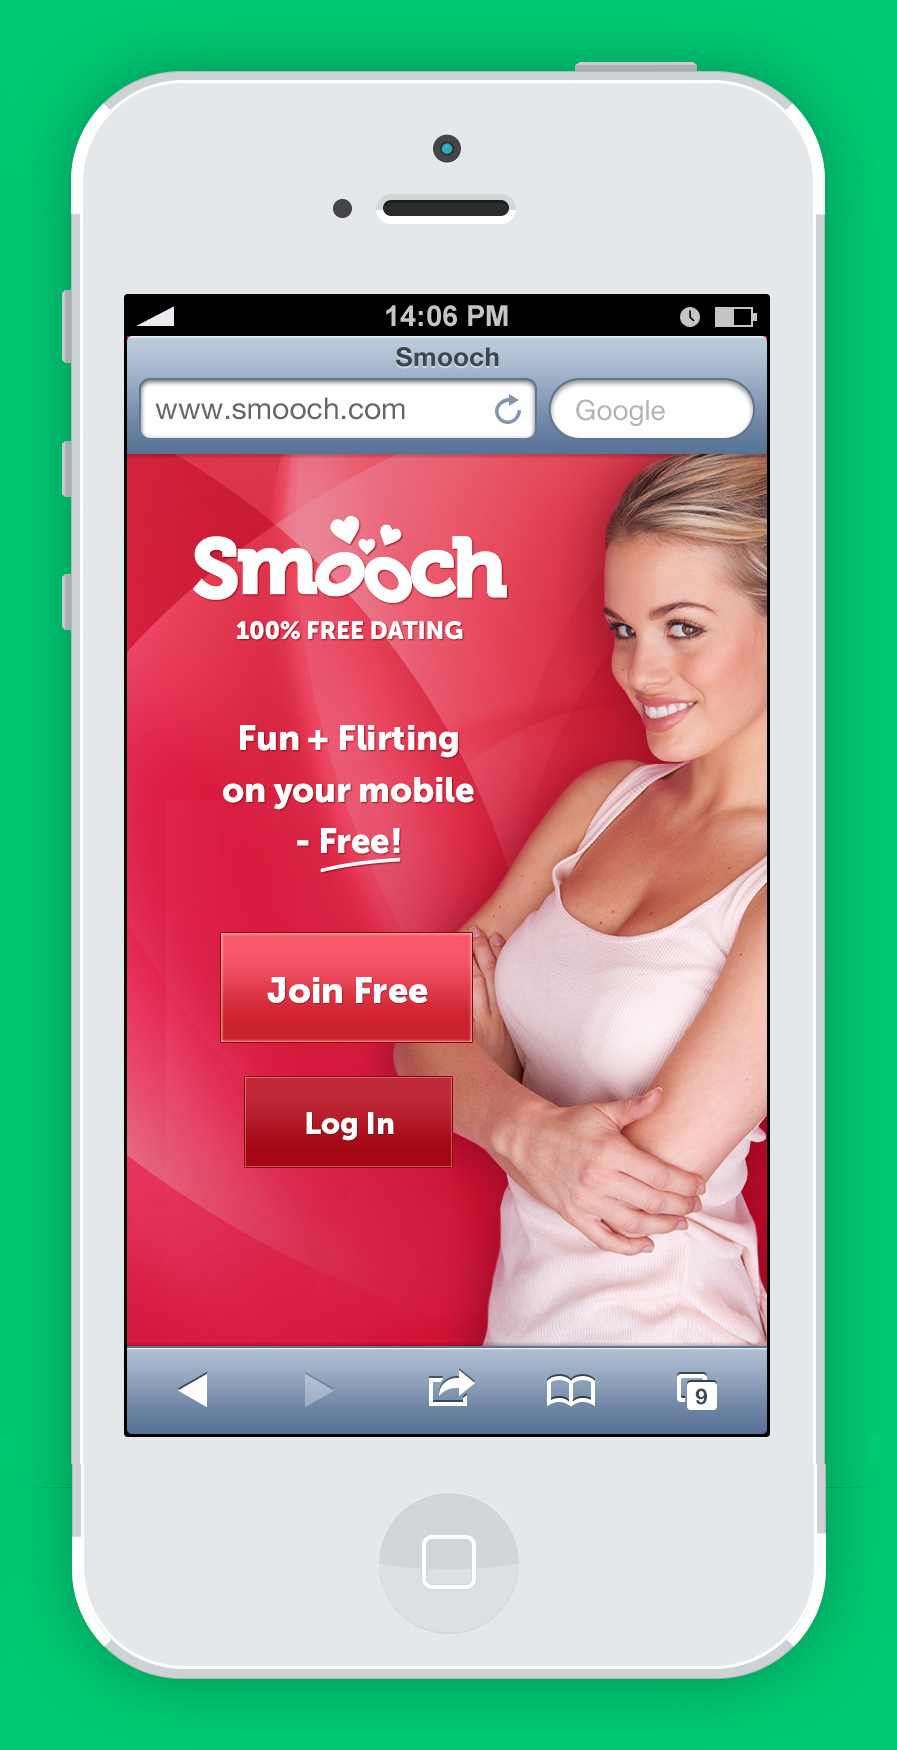 dating websites smooch